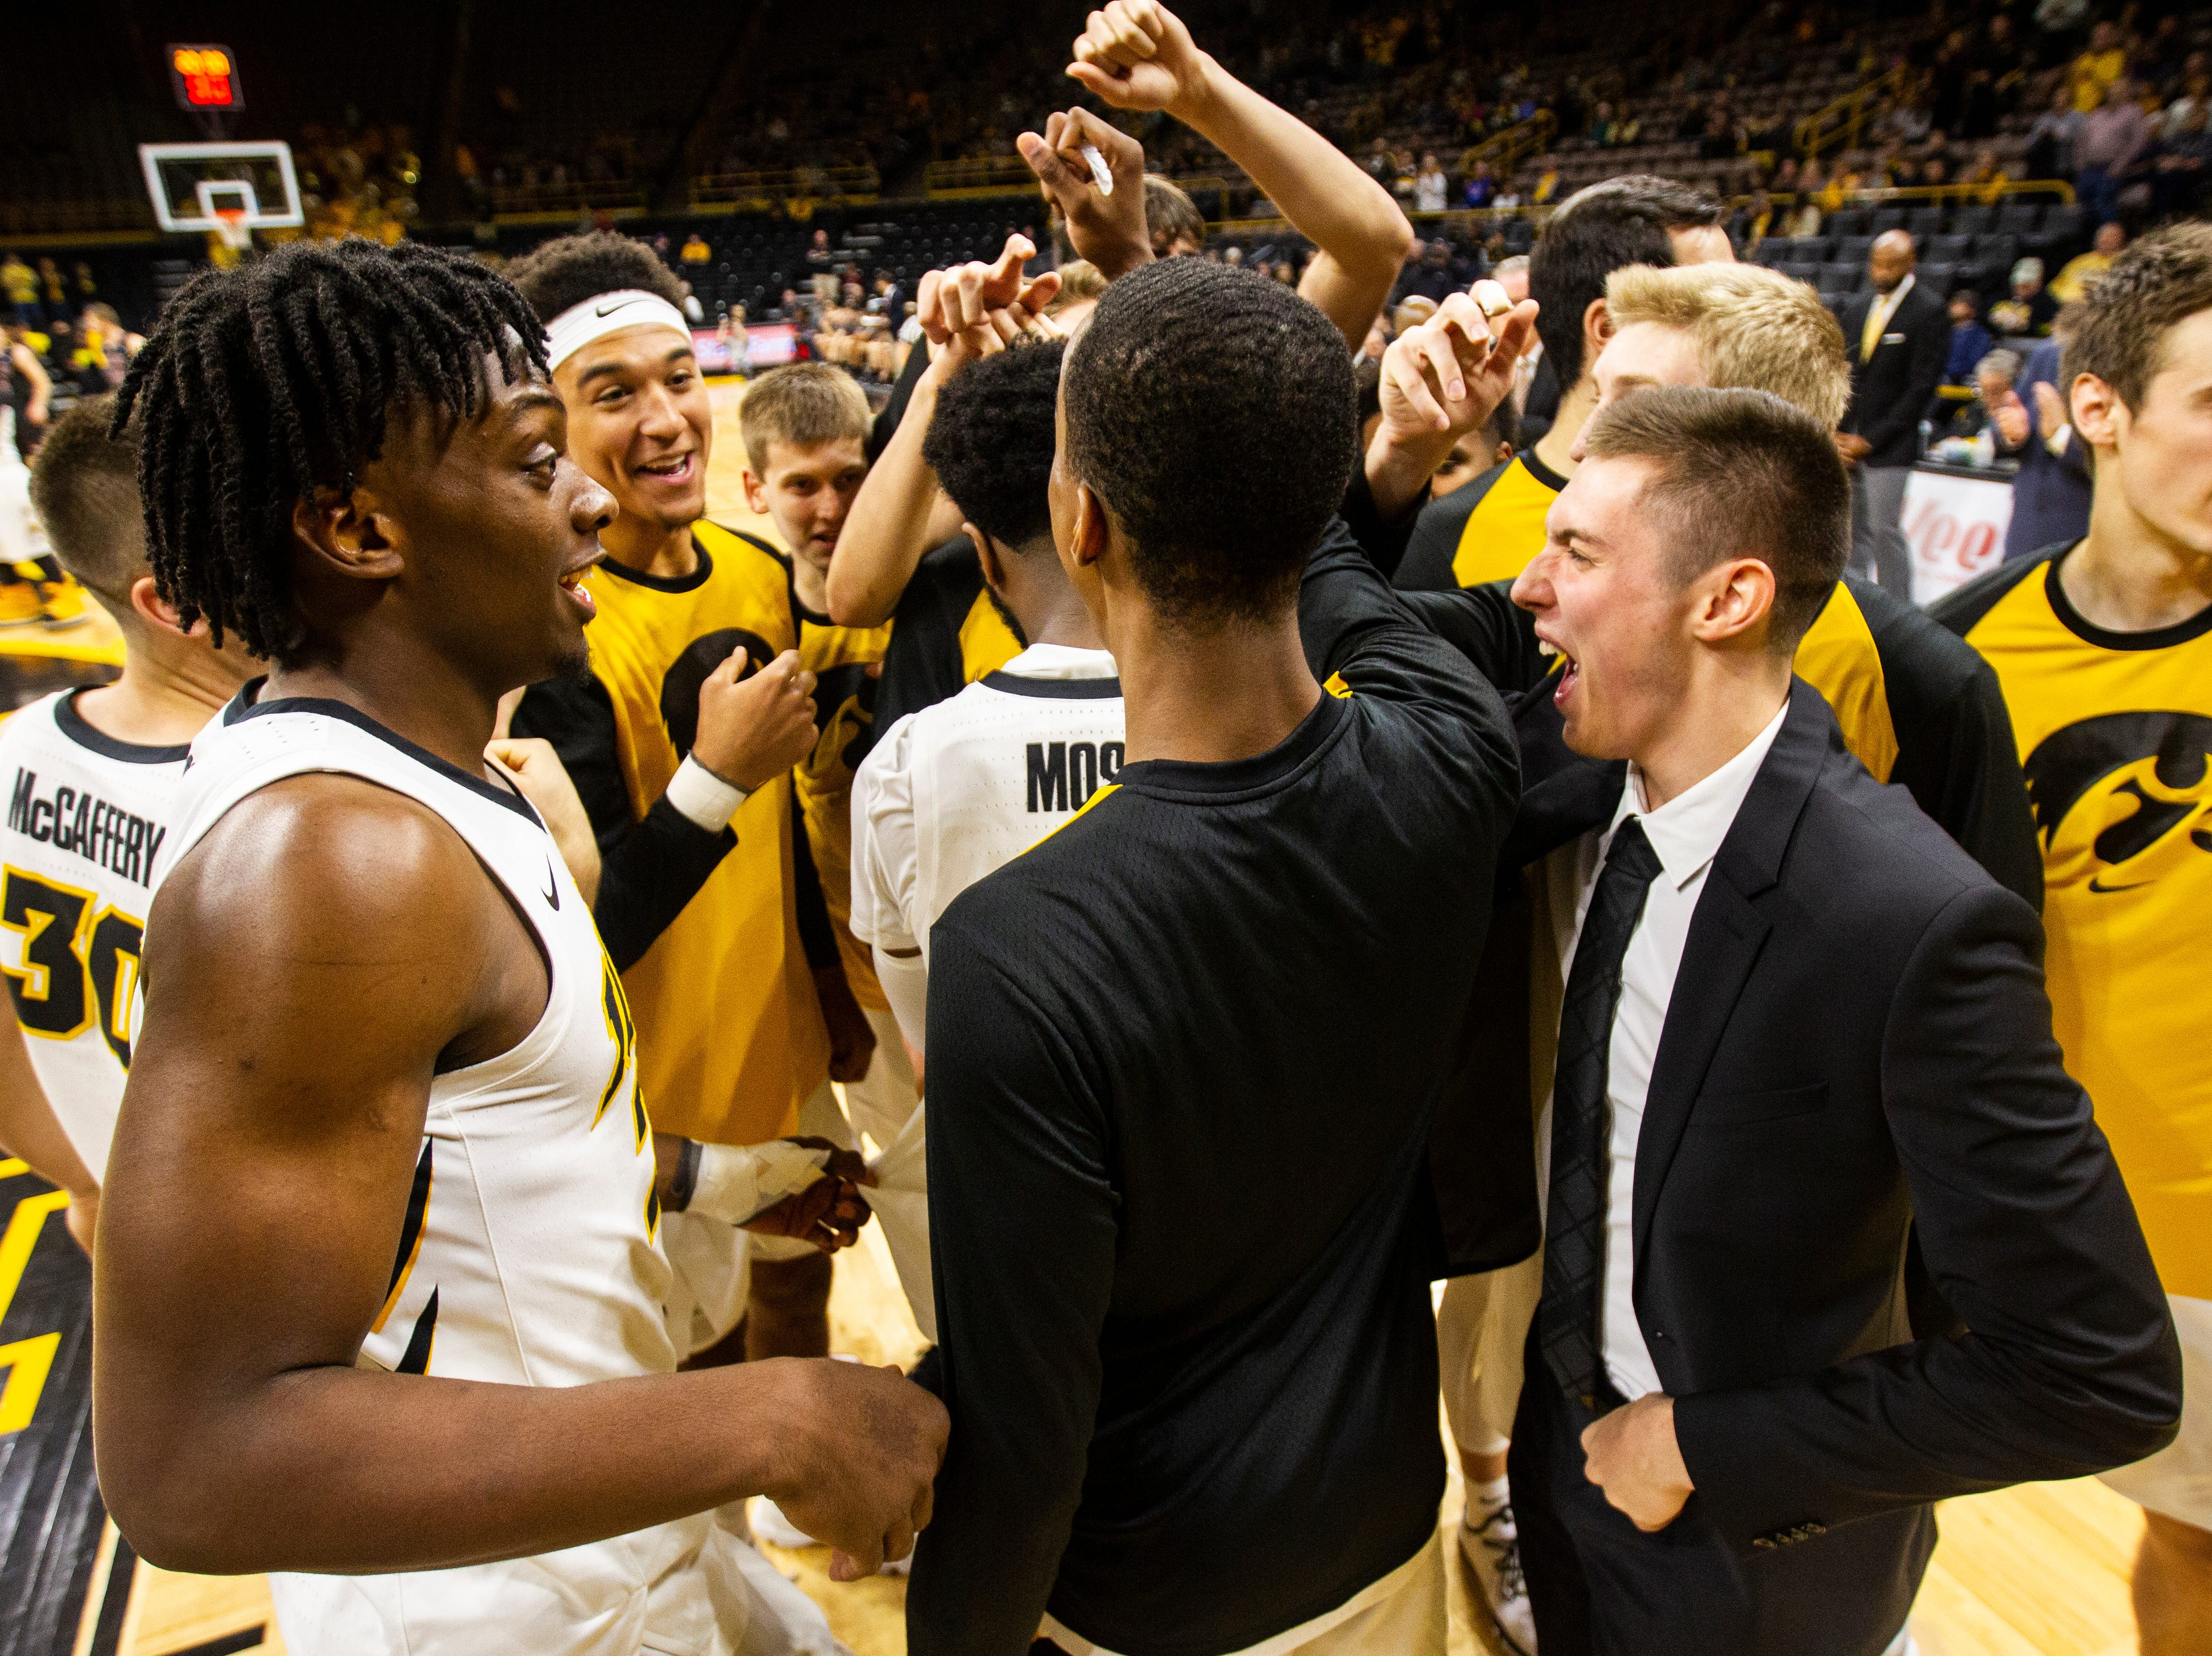 Iowa Hawkeyes players huddle together after introductions before a men's basketball exhibition game on Sunday, Nov. 4, 2018, at Carver-Hawkeye Arena in Iowa City.